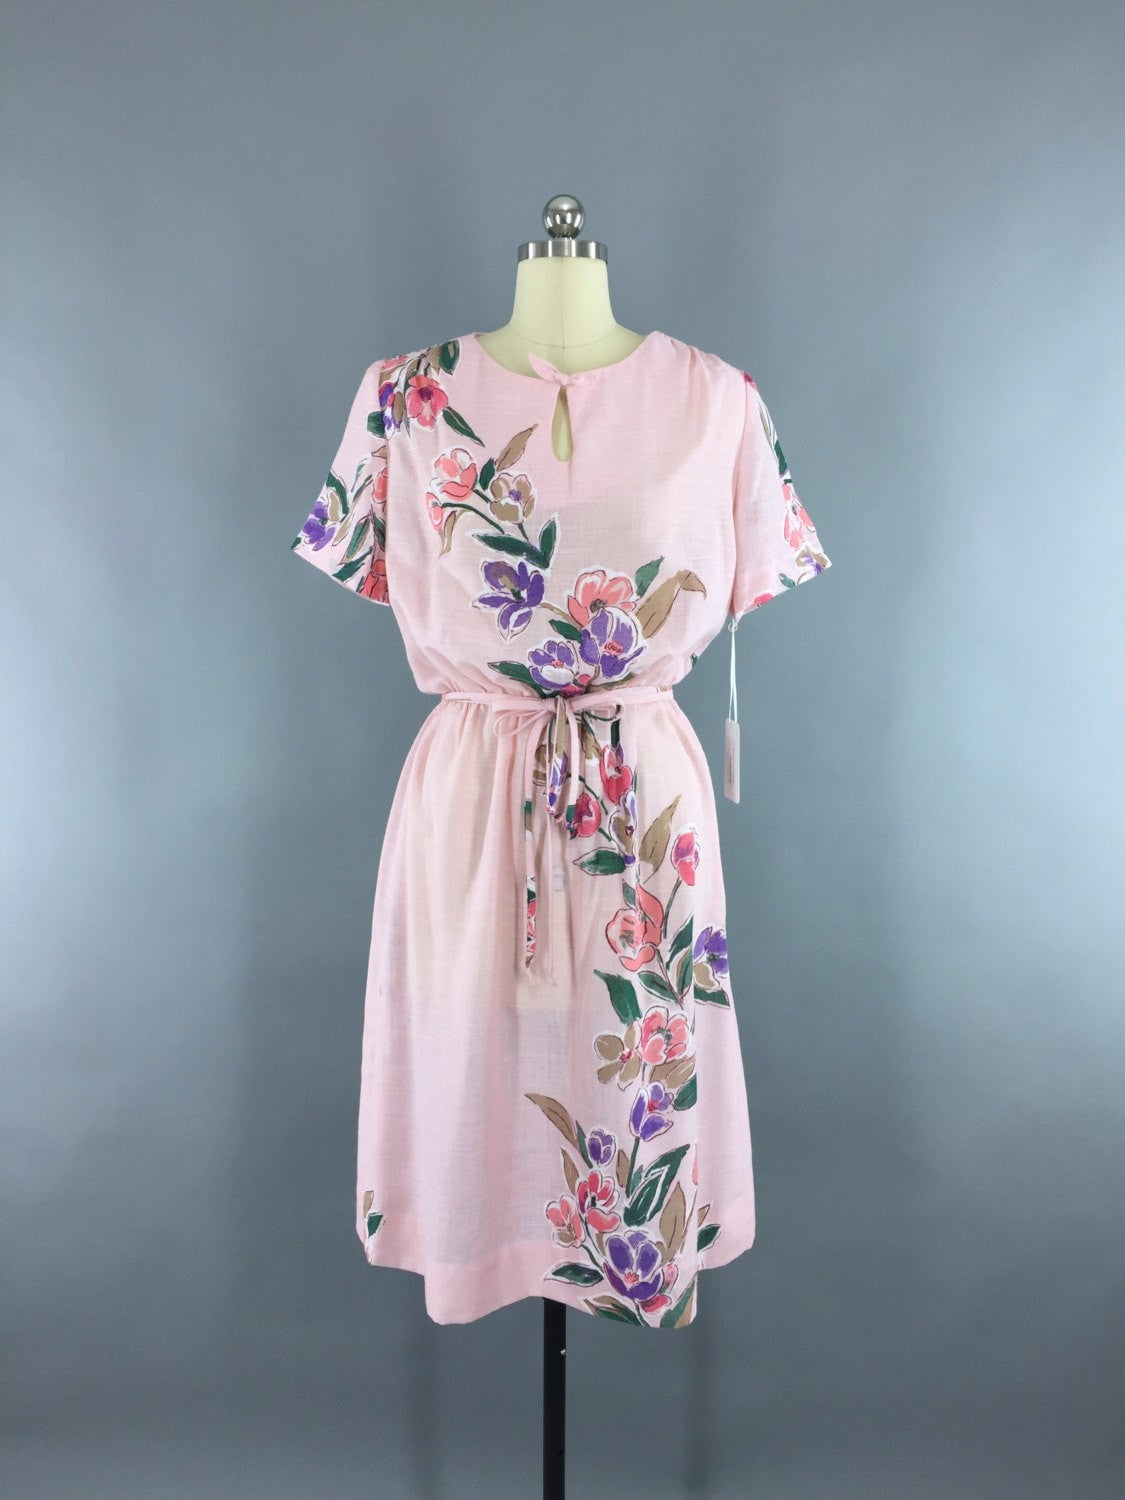 1980s Vintage Pastel Pink Floral Print Dress Dress ThisBlueBird